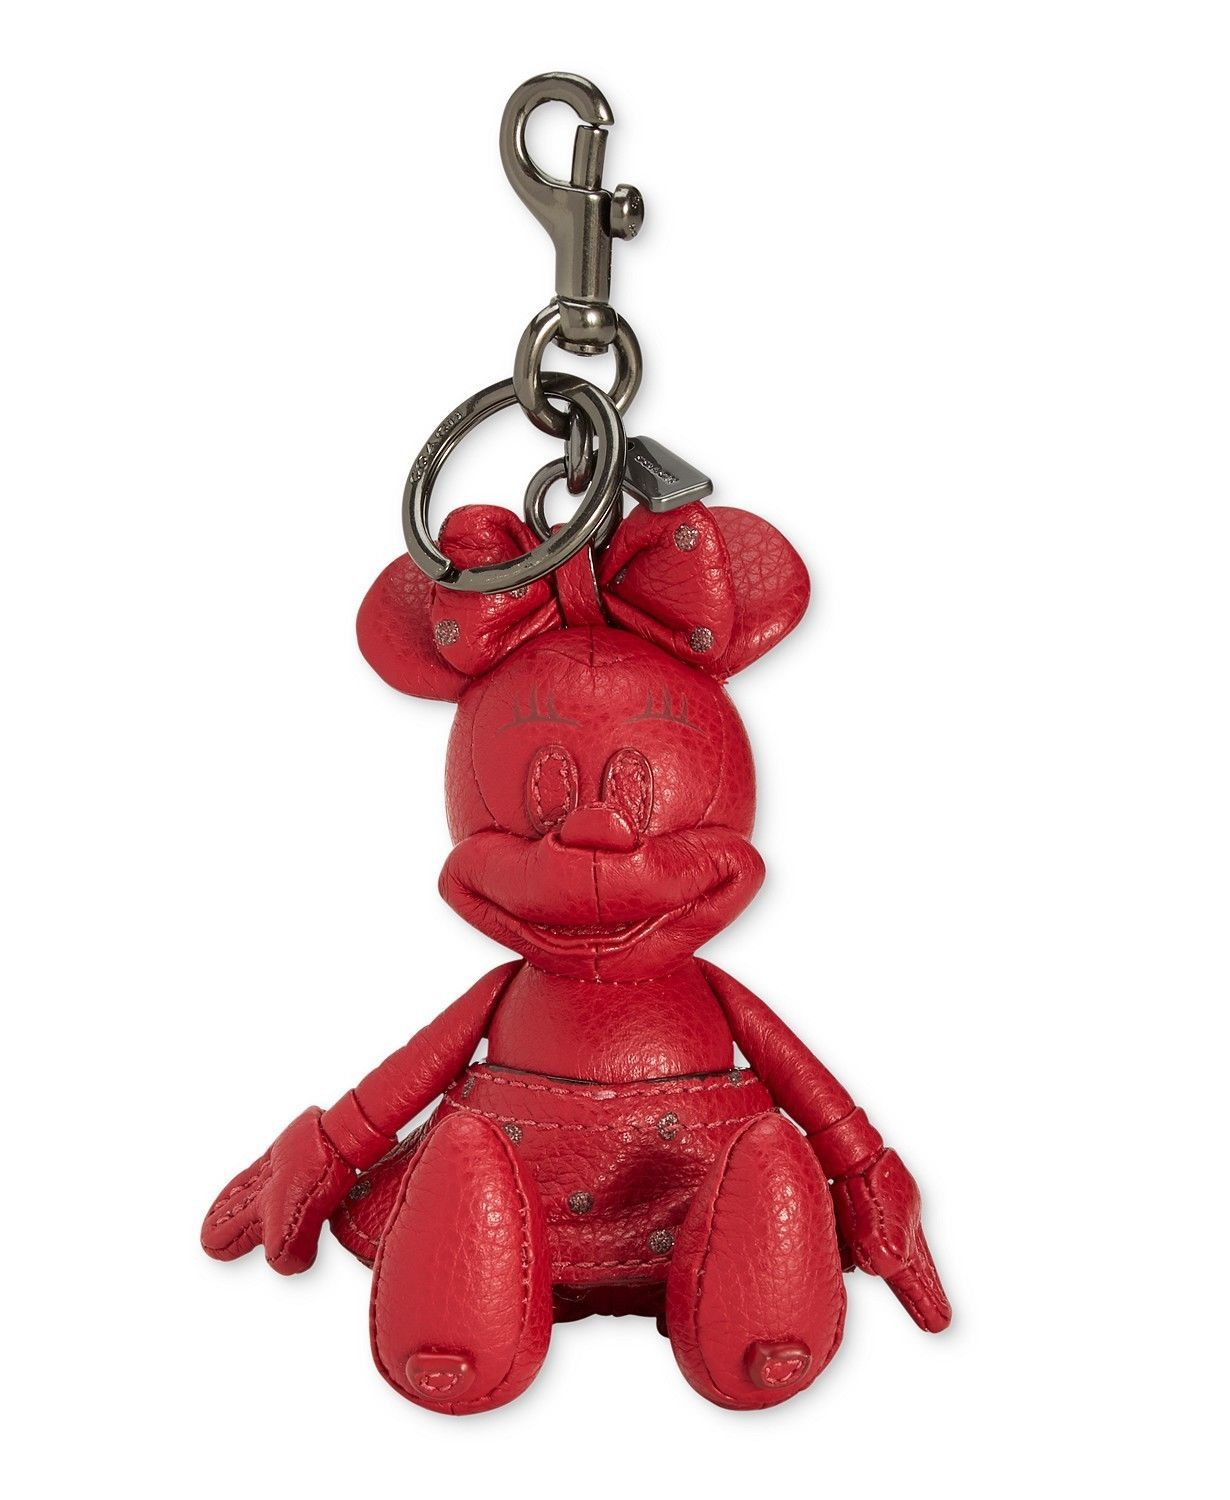 Minnie Mouse Red Charm Key Chain